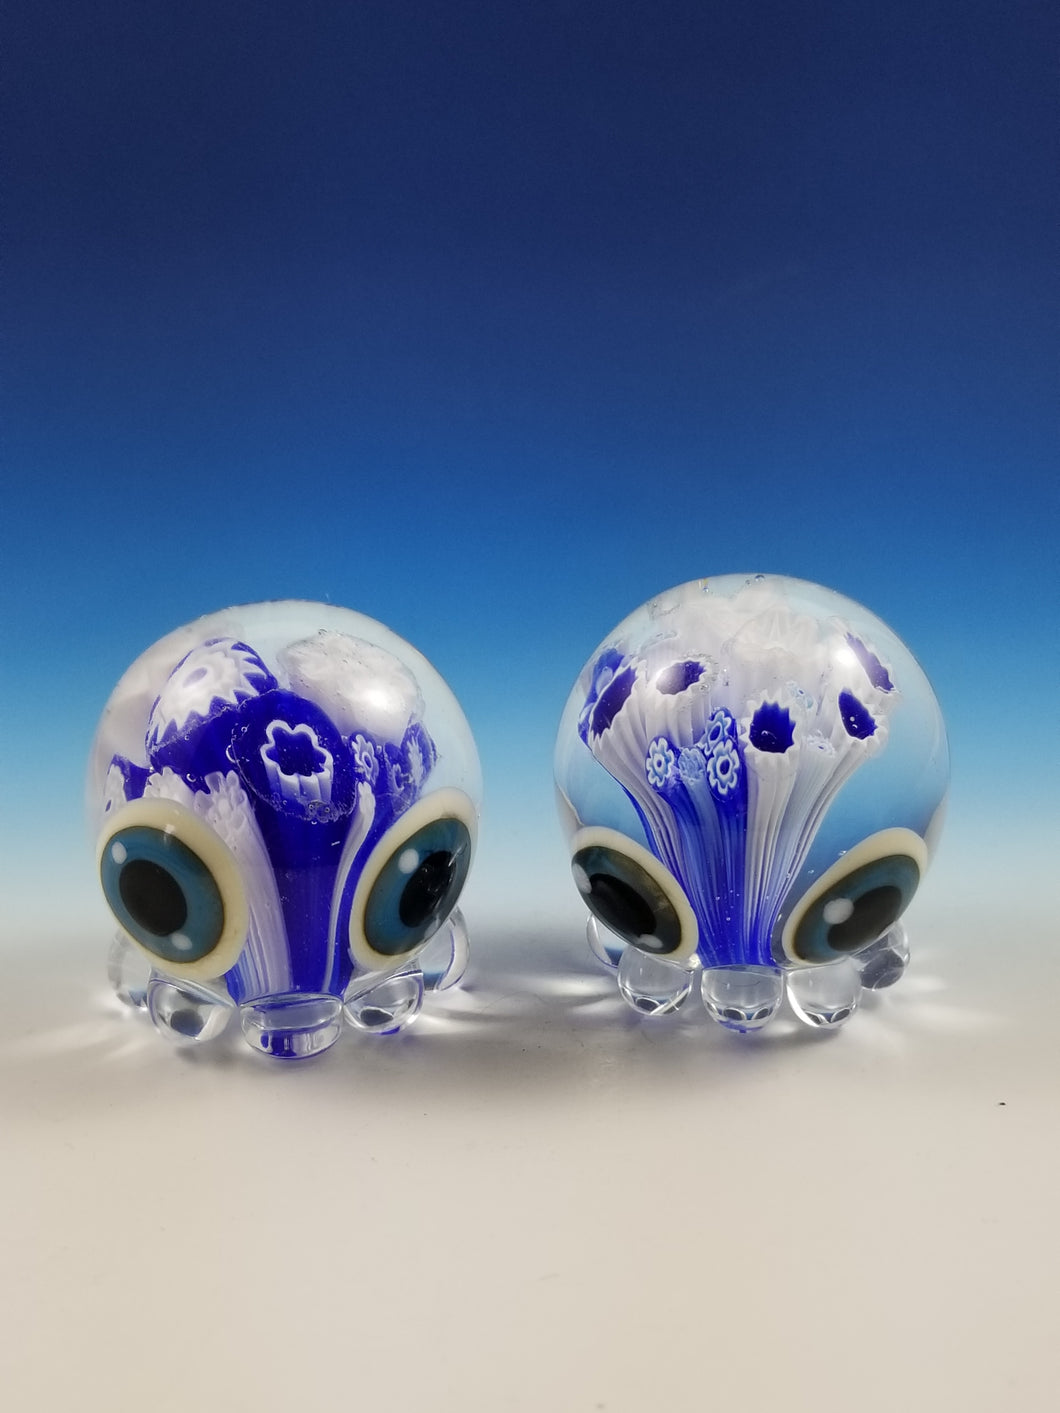 Fish Octopode Milliplode Hand Sculpted Glass Figure - blue color options